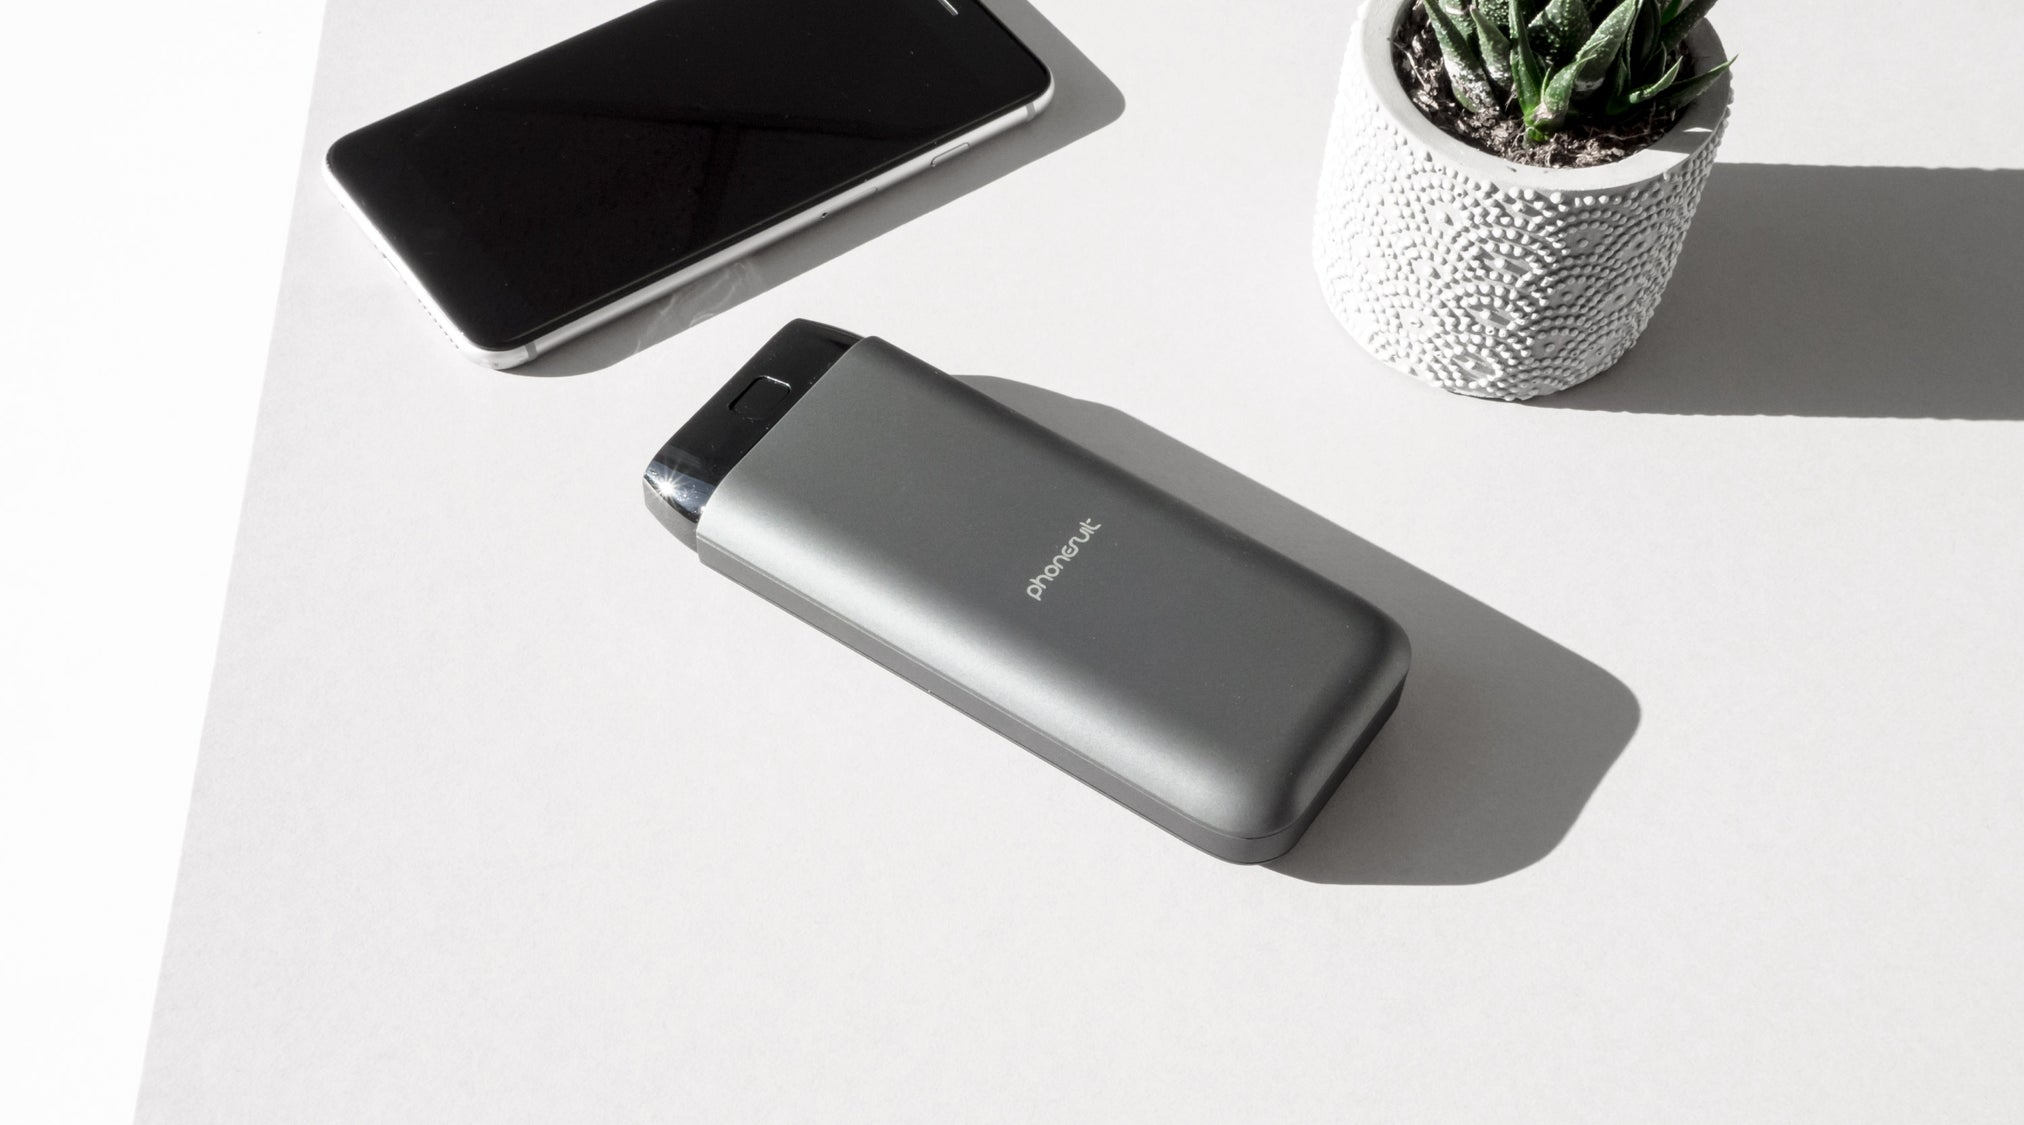 Energy Core Ultra Power Pack 20,000mAh for iPhone, Samsung, & More